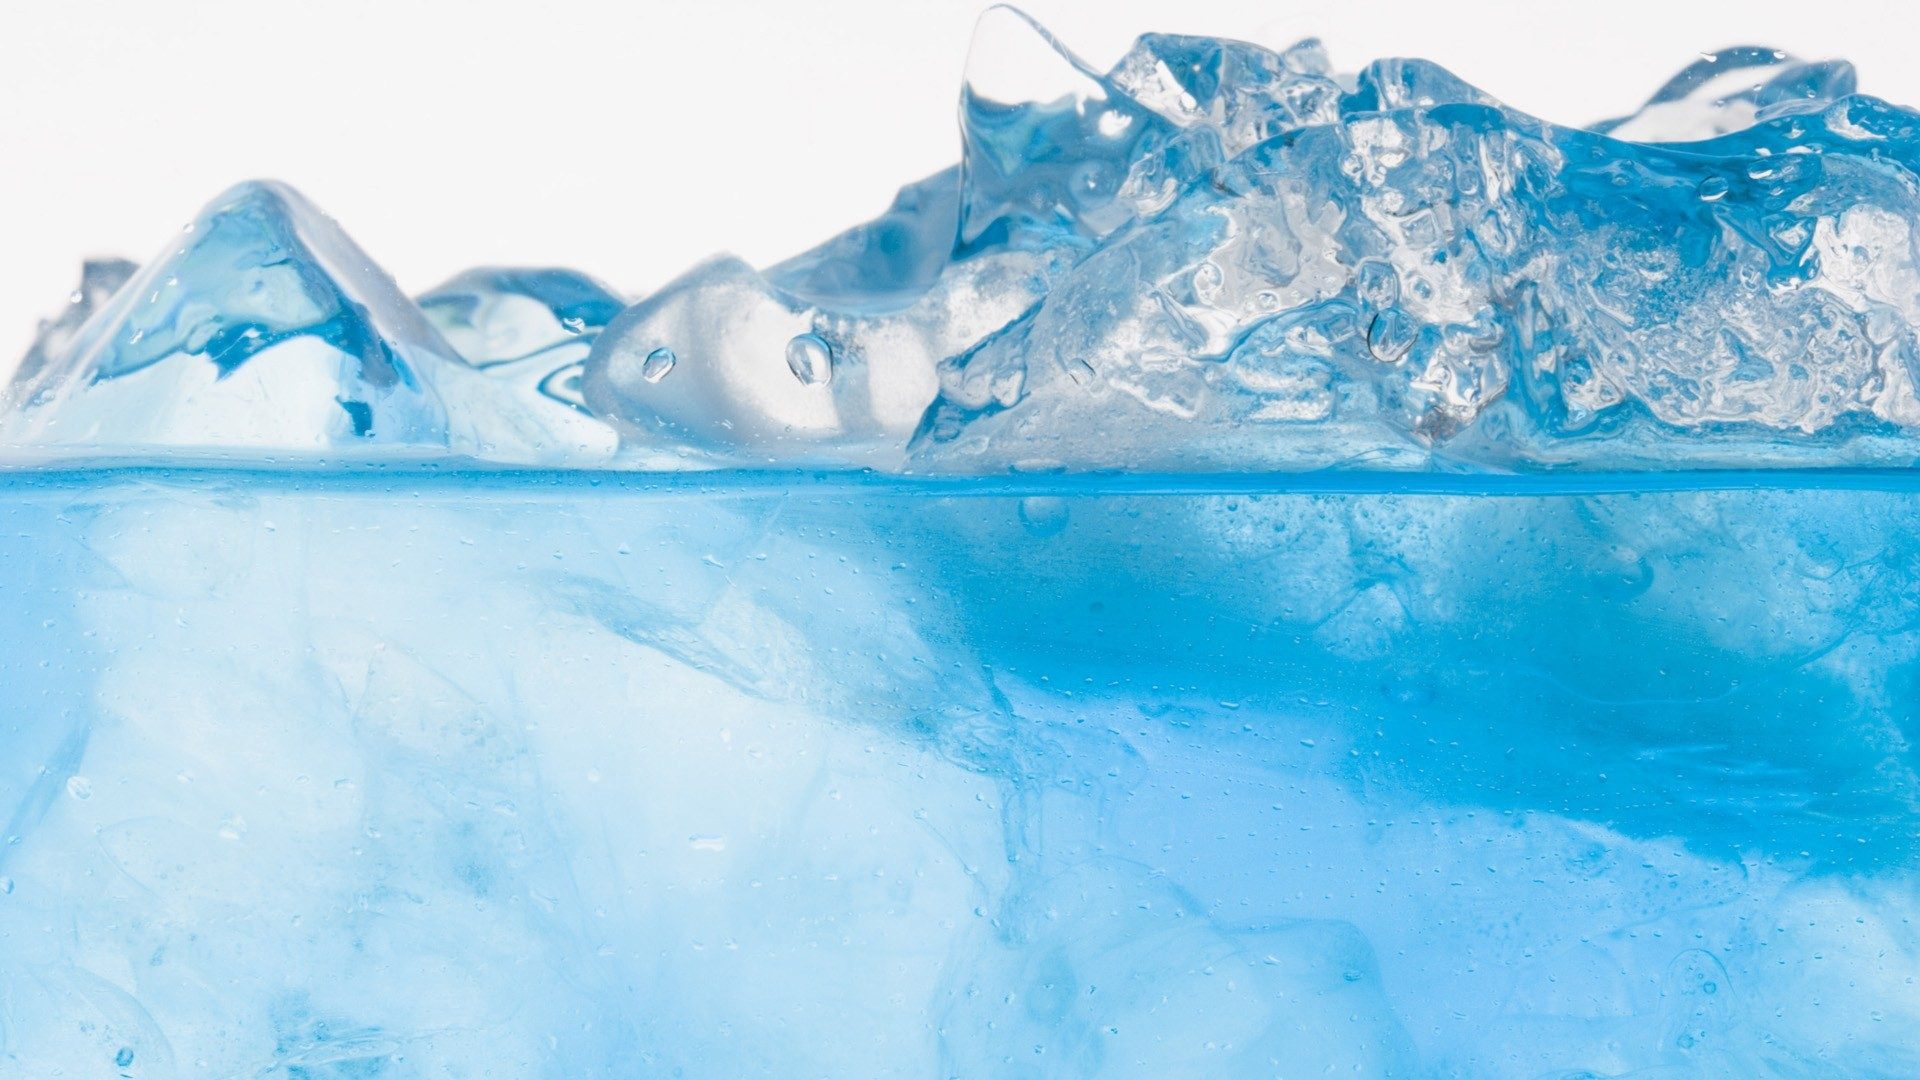 Wallpaper Of Ice